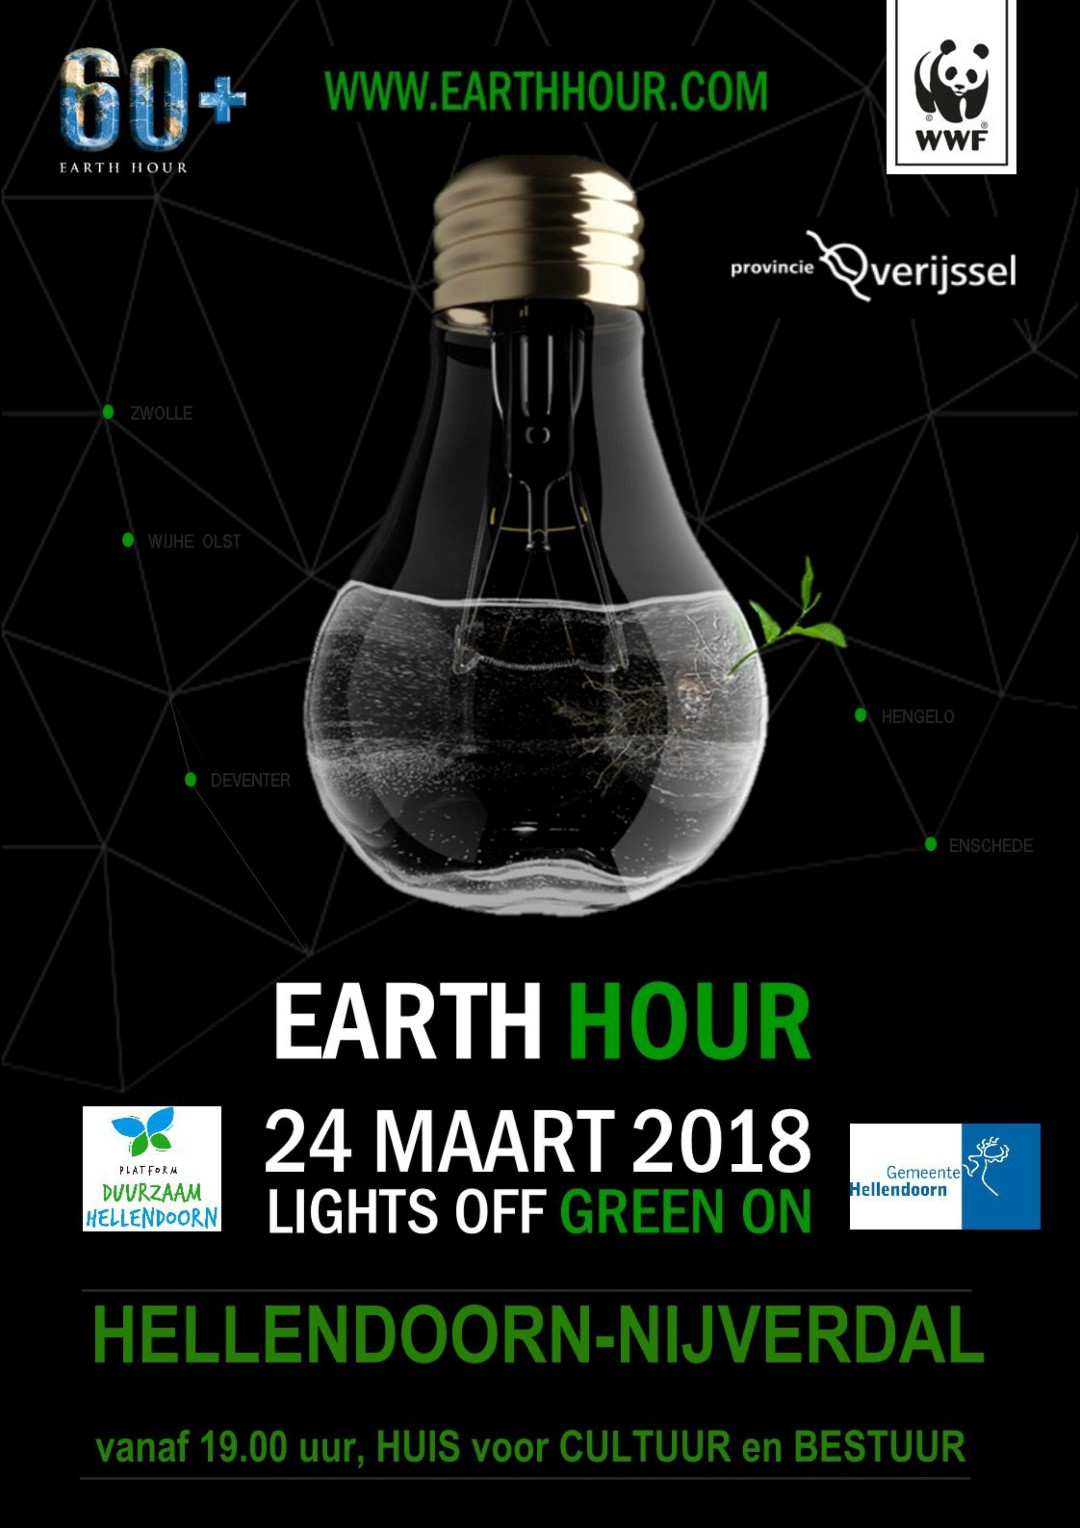 duurzaam hellendoorn Earth Hour 1 2018